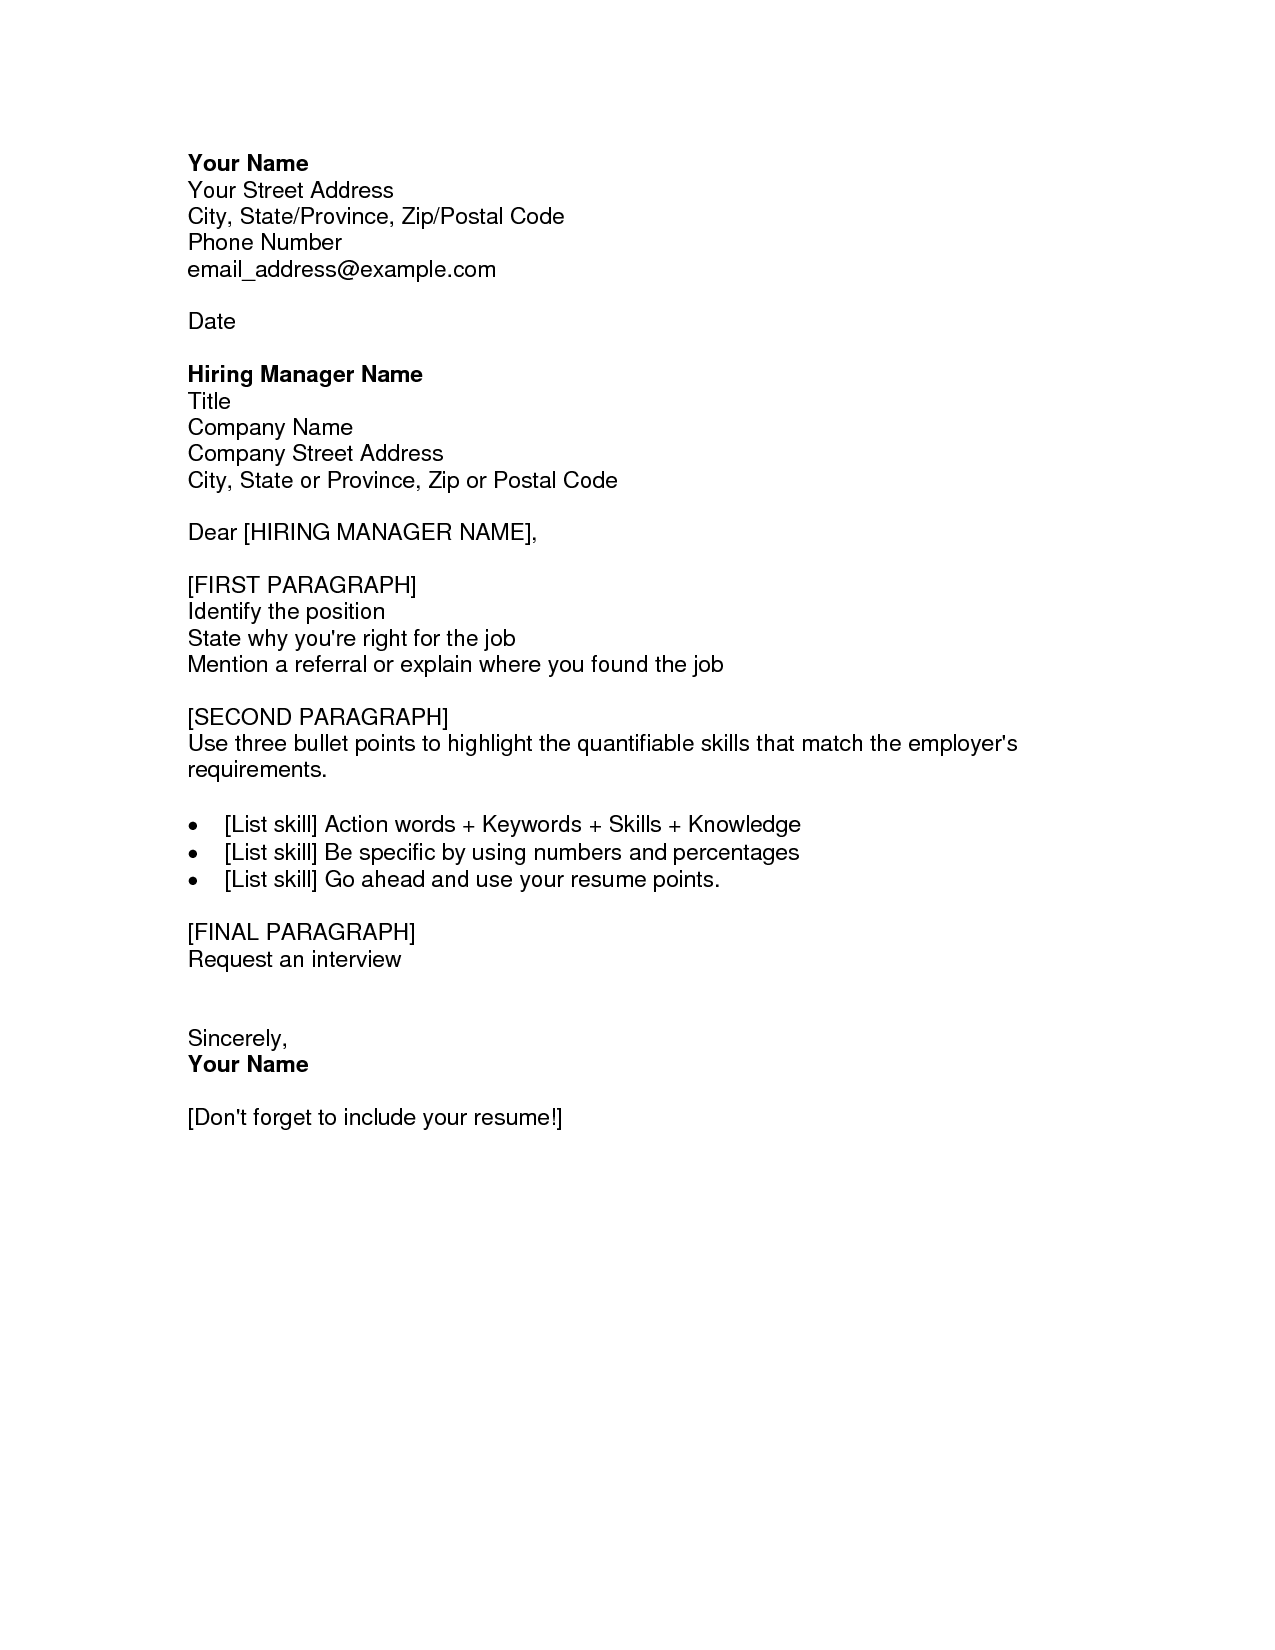 resume cover letter examples - Example Of A Cover Sheet For A Resume